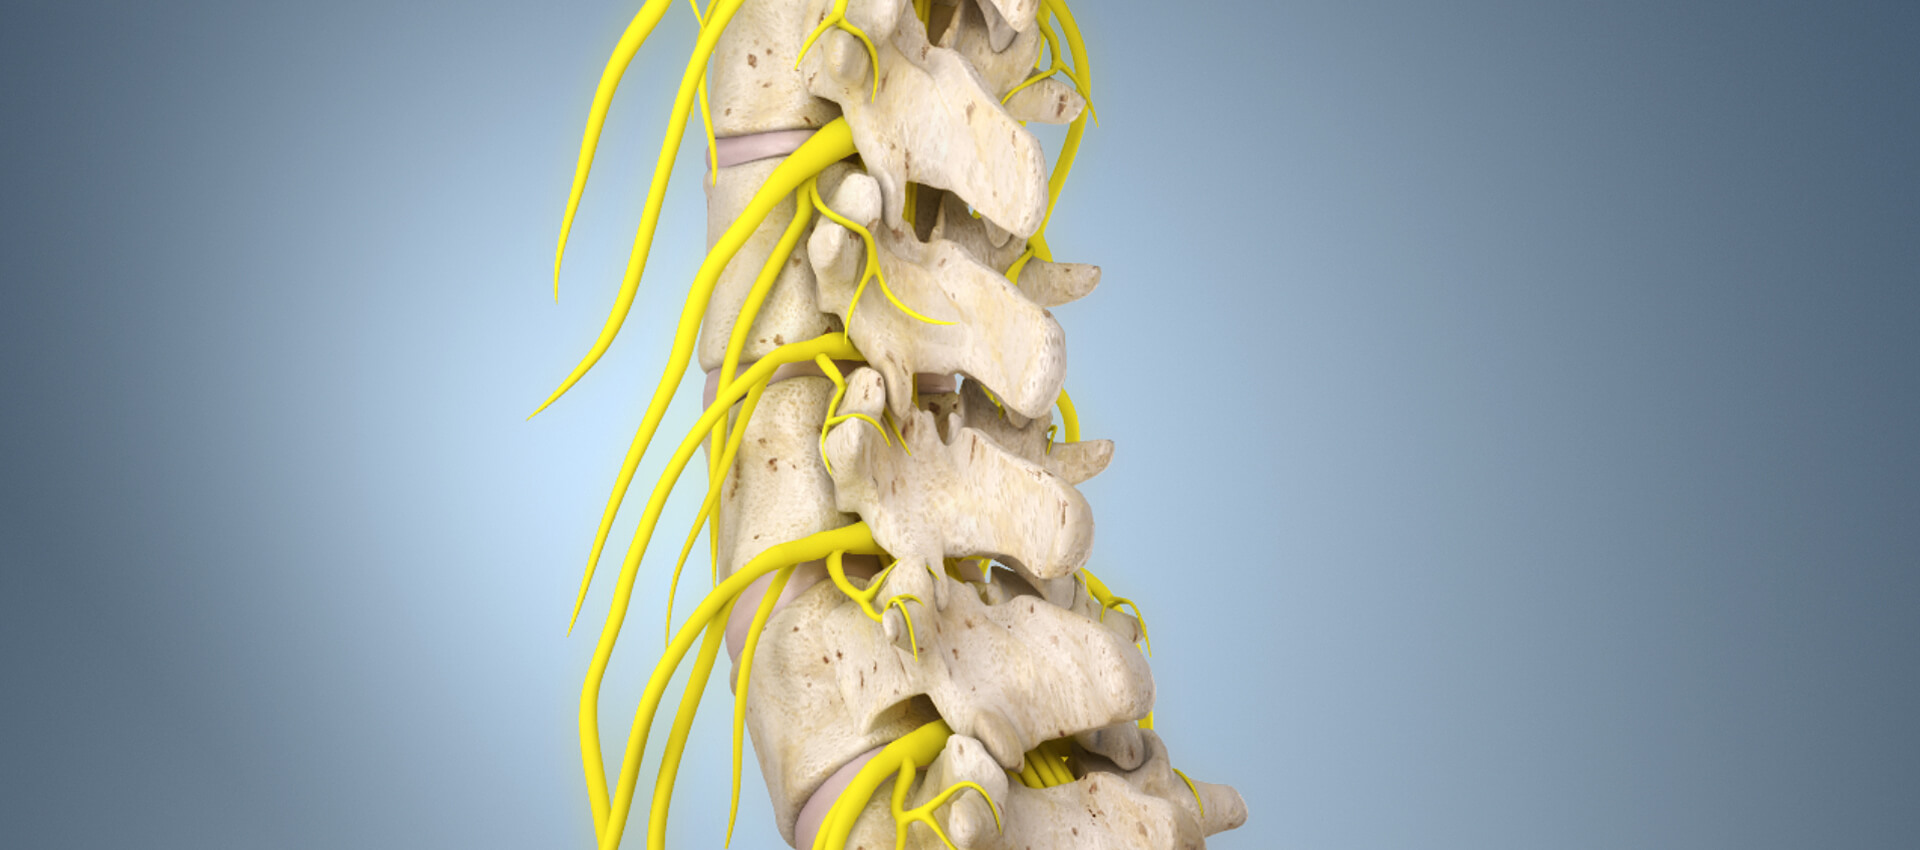 EUROPAINCLINICS - Educational animation to help better understand spinal surgery and eliminate fear